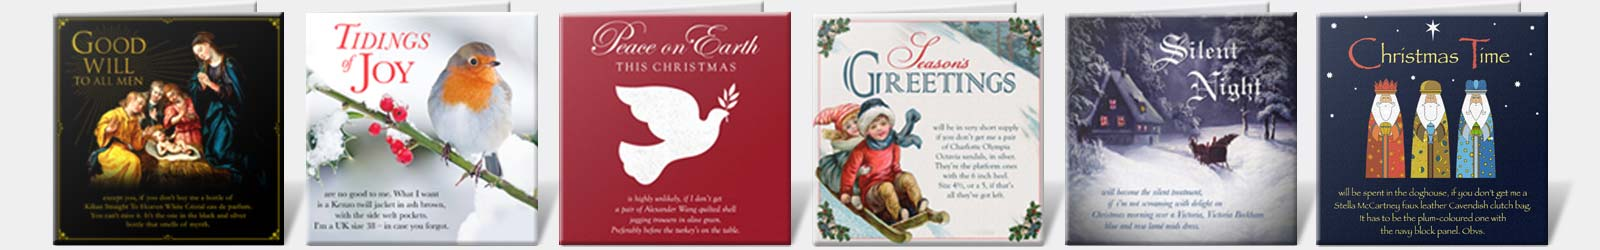 Christmas Card Samples